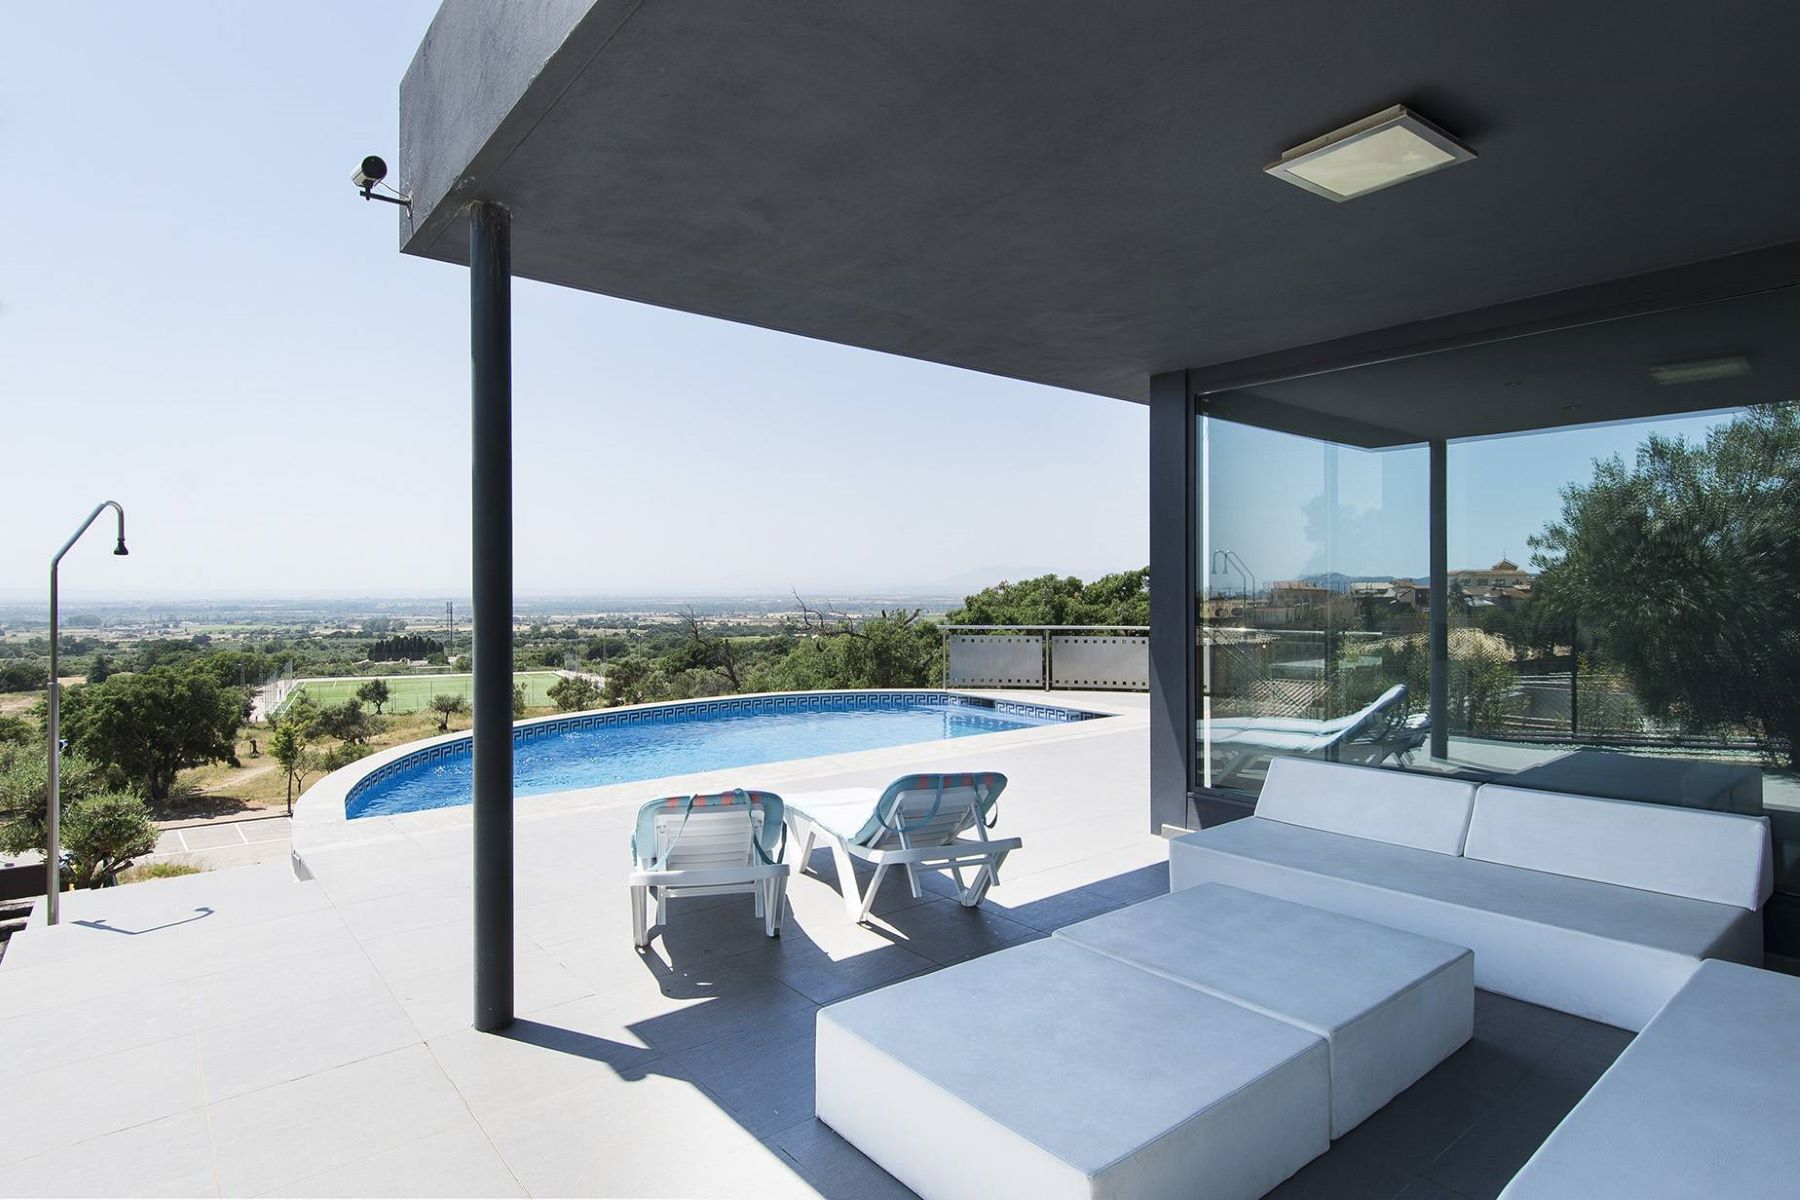 Single Family Home for Sale at Very modern house in Palau de Saverdera Roses, Costa Brava, 17480 Spain